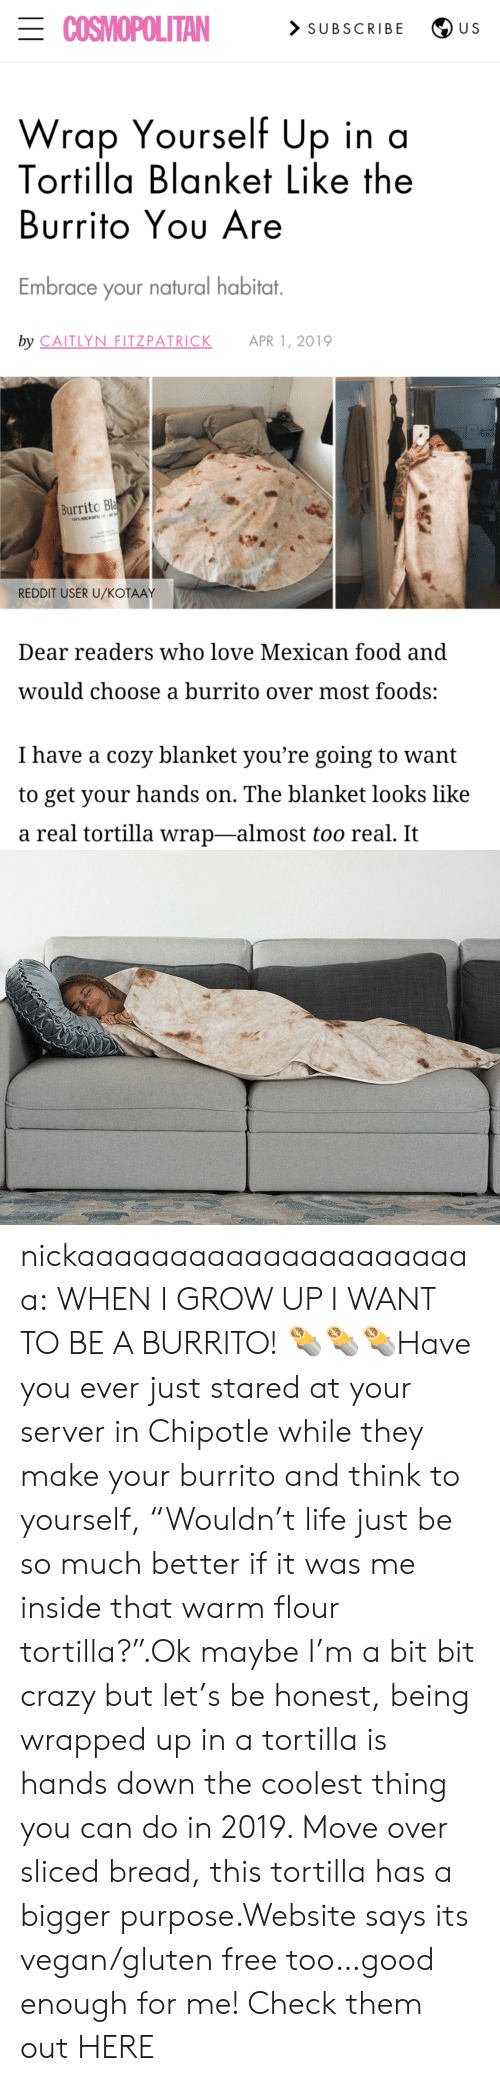 "tortilla: ECOSMOPOLITAN  > SUBSCRIBE  U S  Wrap Yourself Up in a  Tortilla Blanket Like the  Burrito Yου Are  Embrace your natural habitat.  by CAITLYN FITZPATRICK  APR 1, 2019  Burrito Bla  100% MICROFE  REDDIT USER U/KOŤAAY  Dear readers who love Mexican food and  would choose a burrito over most foods:  I have a cozy blanket you're going to want  to get your hands on. The blanket looks like  a real tortilla wrap-almost too real. It nickaaaaaaaaaaaaaaaaaaaaaa:  WHEN I GROW UP I WANT TO BE A BURRITO! 🌯🌯🌯Have you ever just stared at your server in Chipotle while they make your burrito and think to yourself, ""Wouldn't life just be so much better if it was me inside that warm flour tortilla?"".Ok maybe I'm a bit bit crazy but let's be honest, being wrapped up in a tortilla is hands down the coolest thing you can do in 2019. Move over sliced bread, this tortilla has a bigger purpose.Website says its vegan/gluten free too…good enough for me! Check them out HERE"